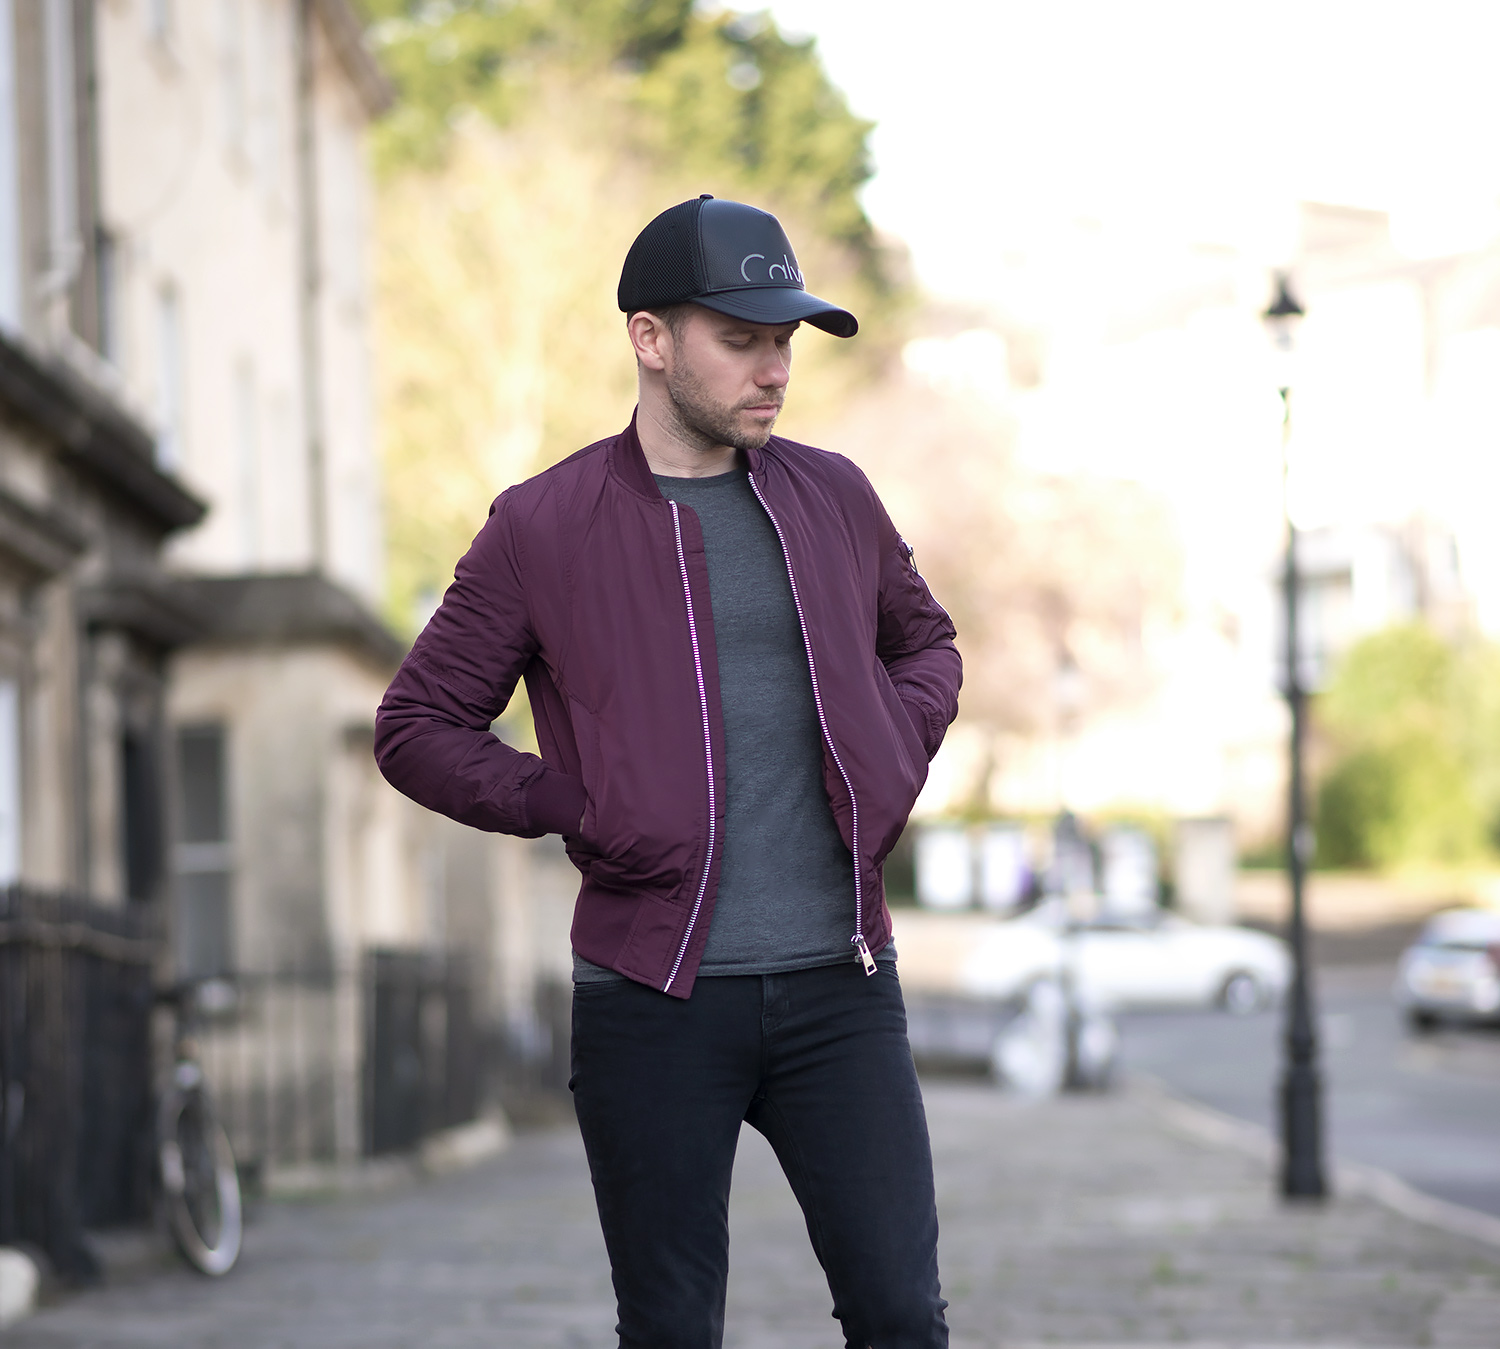 Mens Uk Fashion Blogger Asos Burgundy Bomber Jacket Calvin Klein Baseball Cap Brighter Use